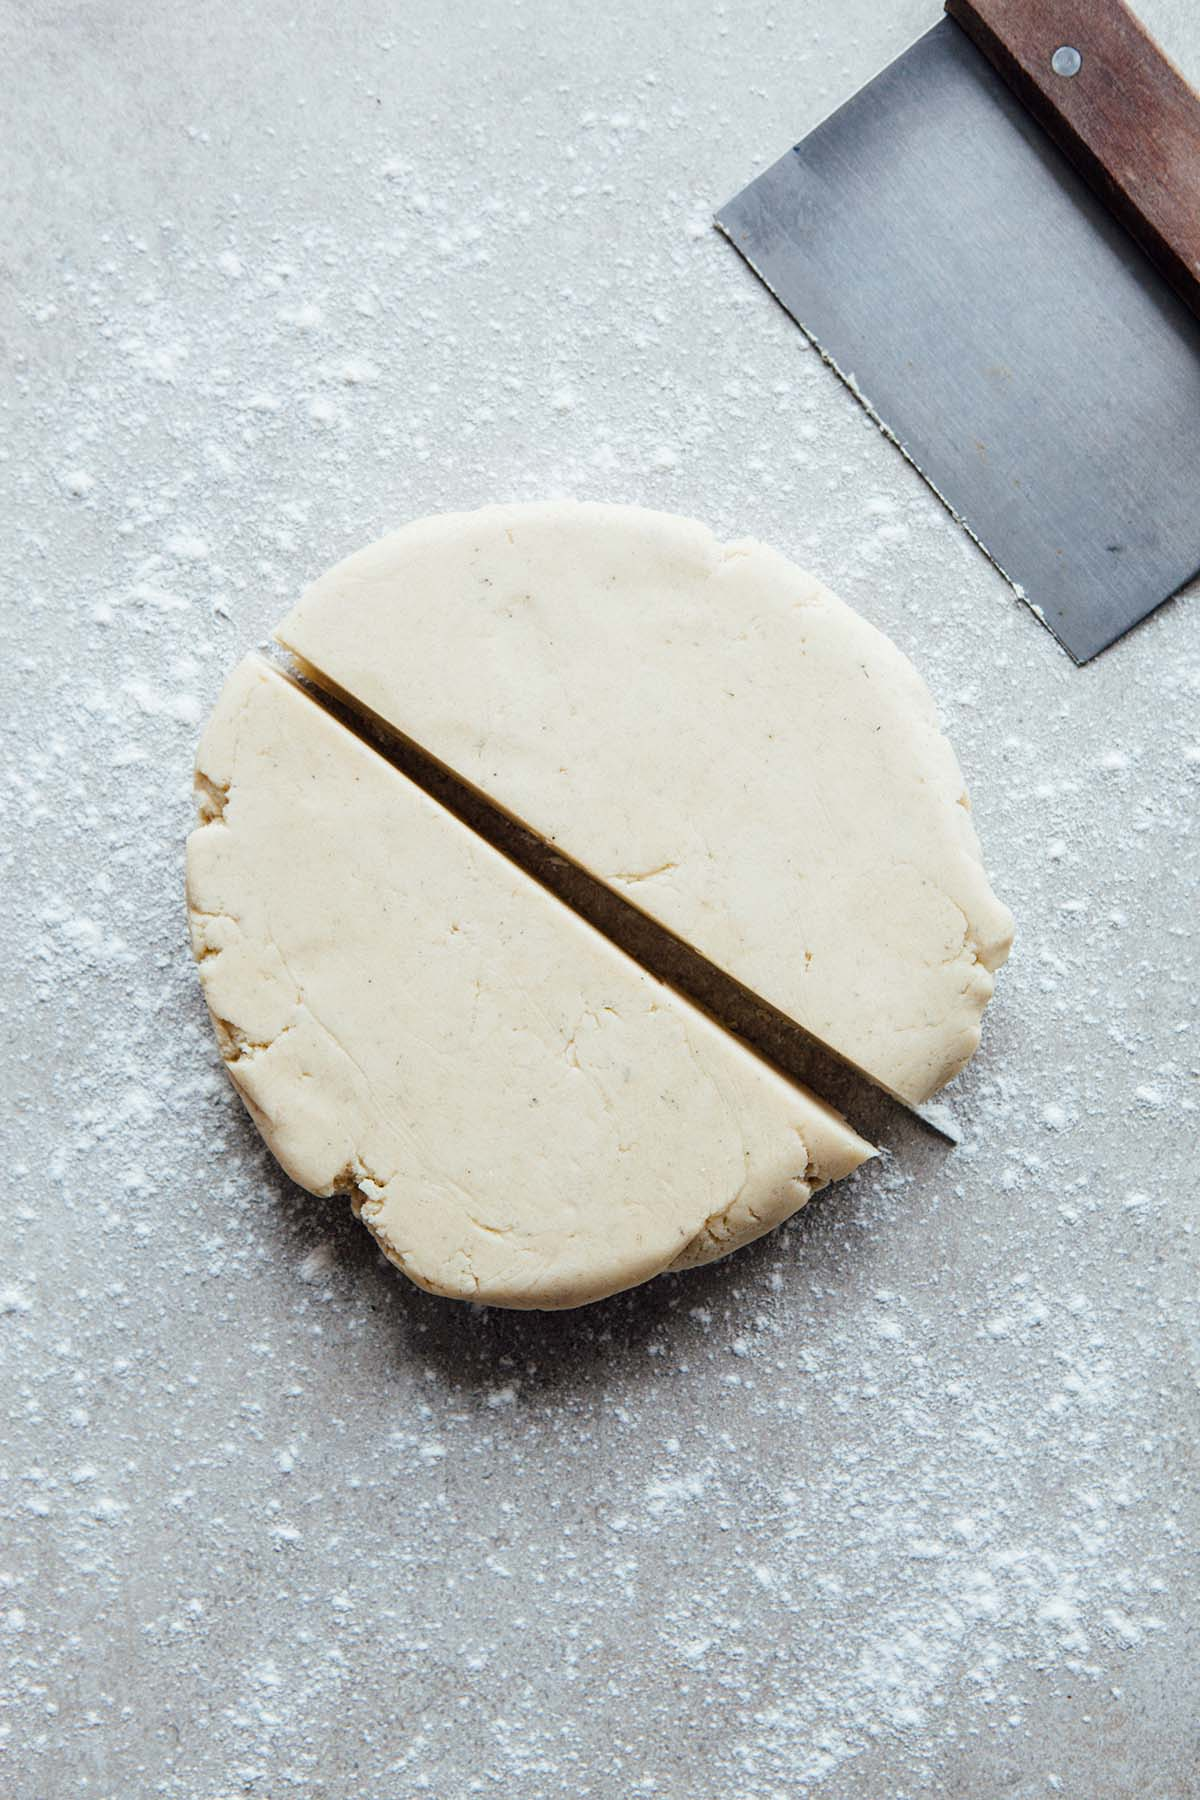 A disc of chilled cookie dough cut in half.